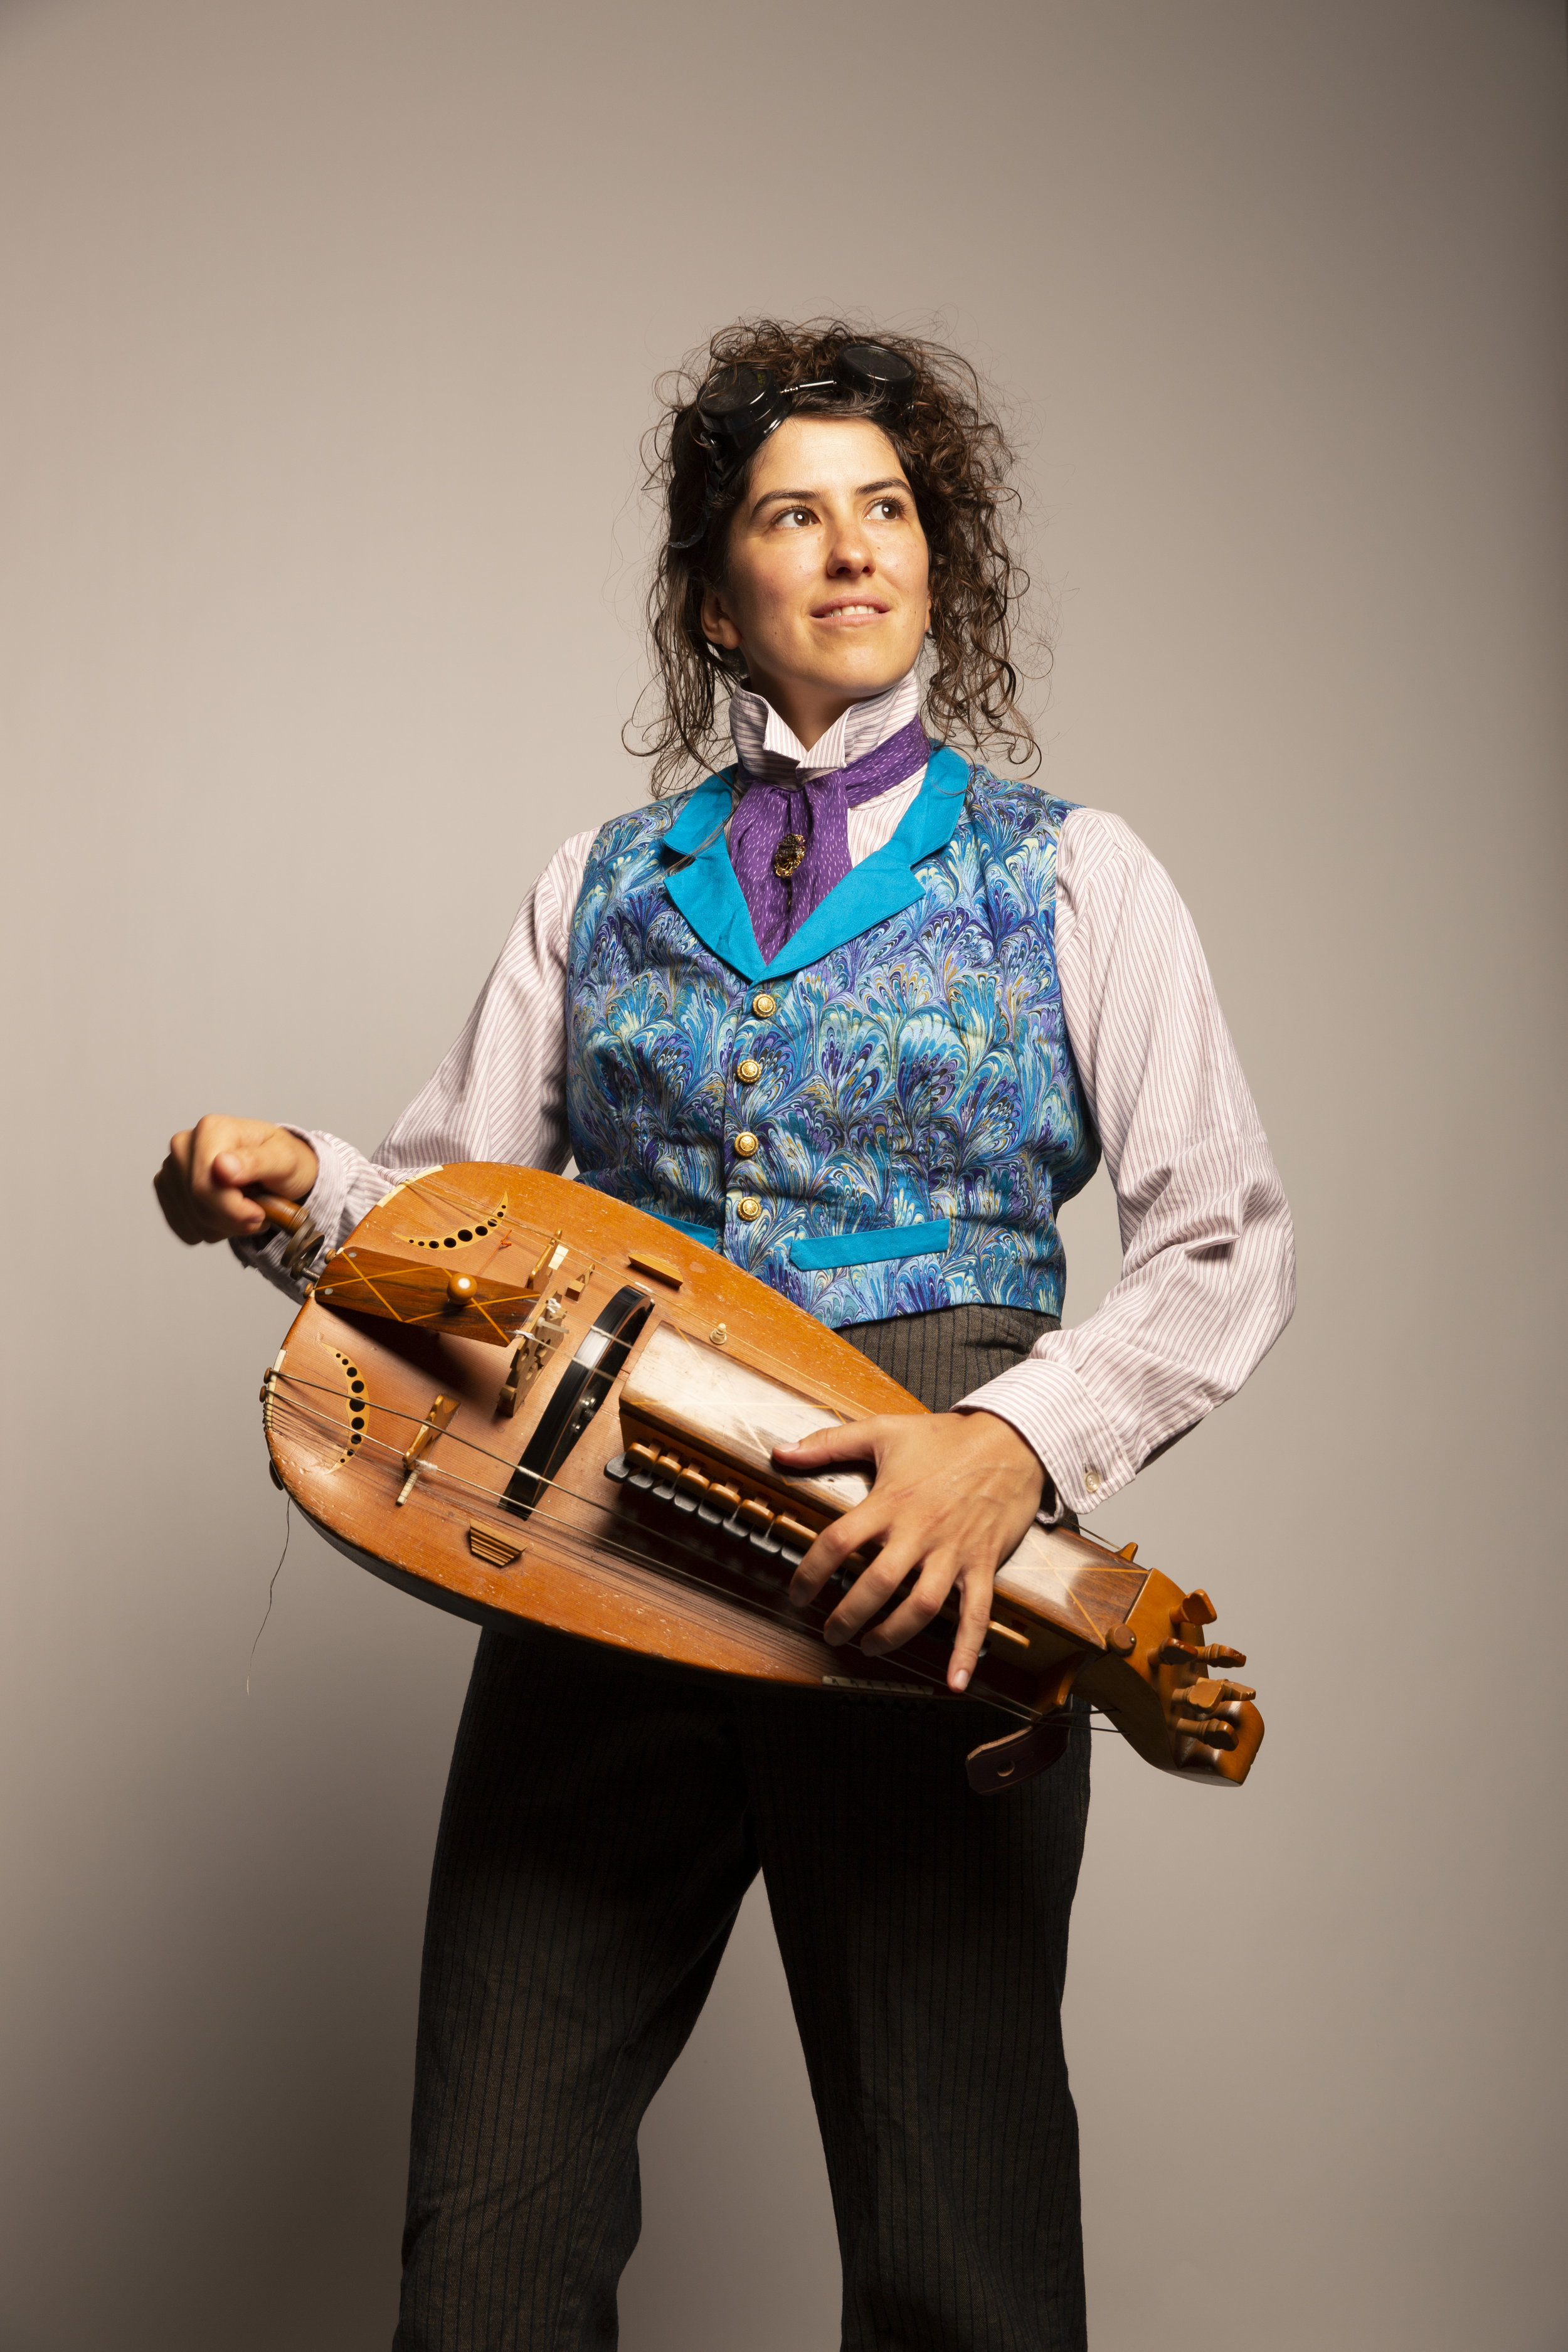 Here Eleonore is playing the hurdy-gurdy - which is like a cross between a violin, accordion and barrel organ made out of beautiful and somehow nautical looking wooden parts.